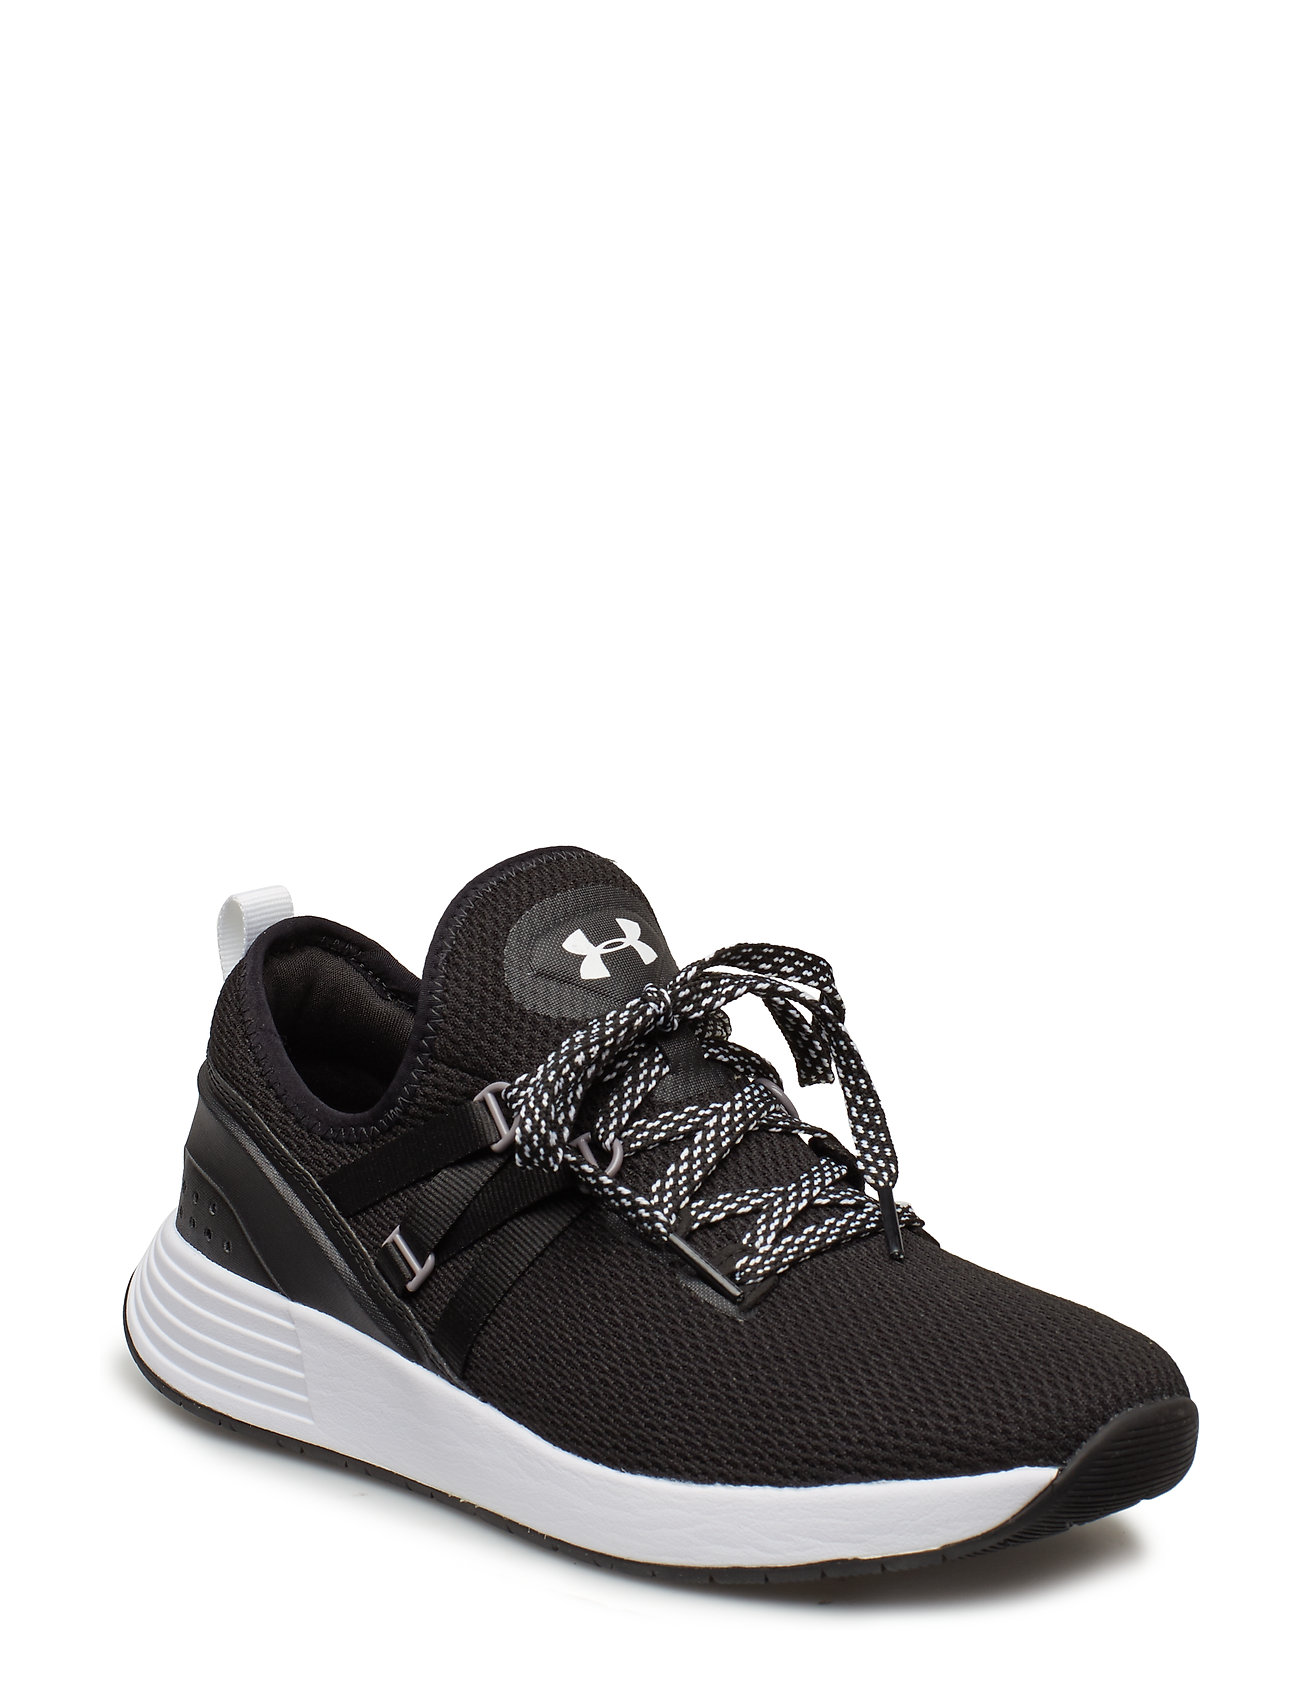 Under Armour Ua W Breathe Trainer Shoes Sport Shoes Training Shoes- Golf/tennis/fitness Svart Under Armour